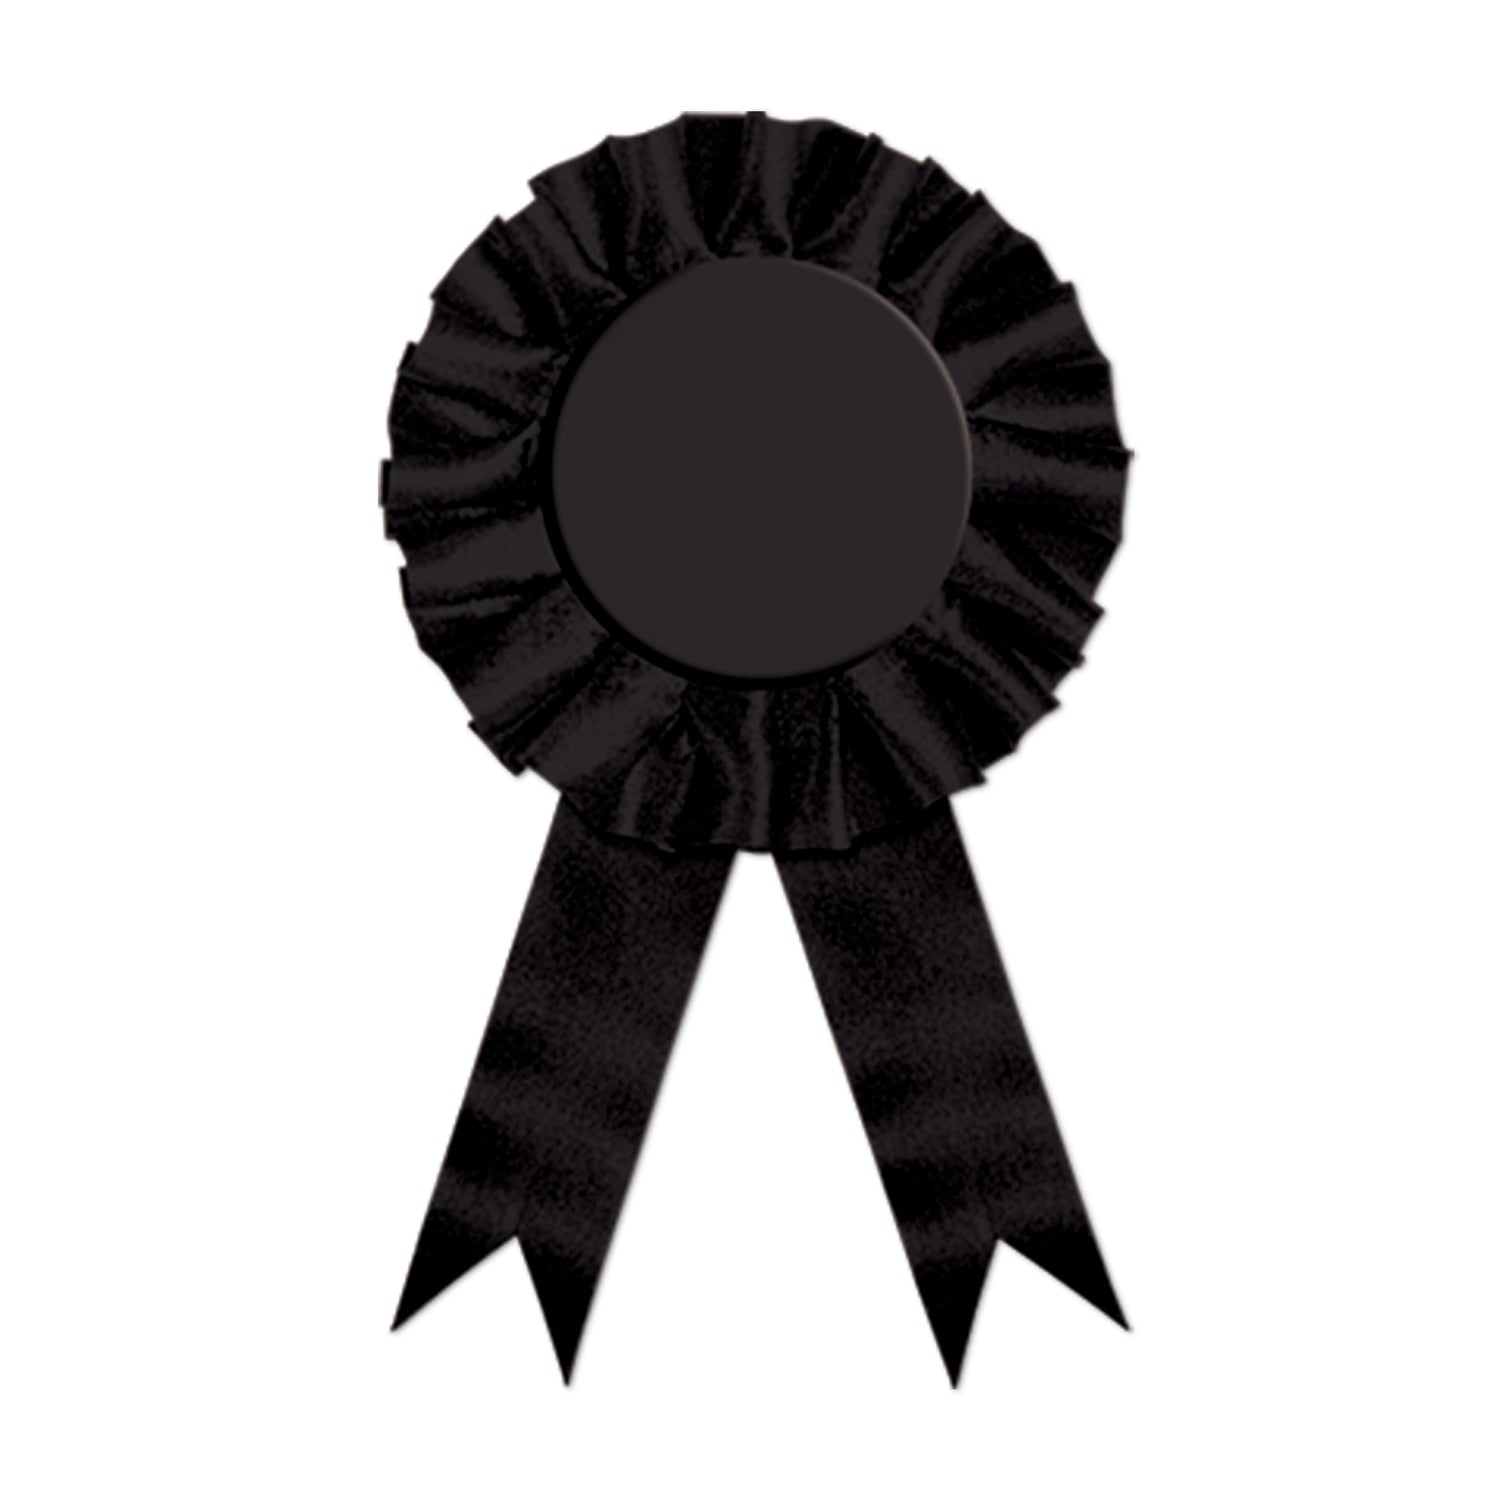 Award Ribbon, black by Beistle - Derby Day Theme Decorations